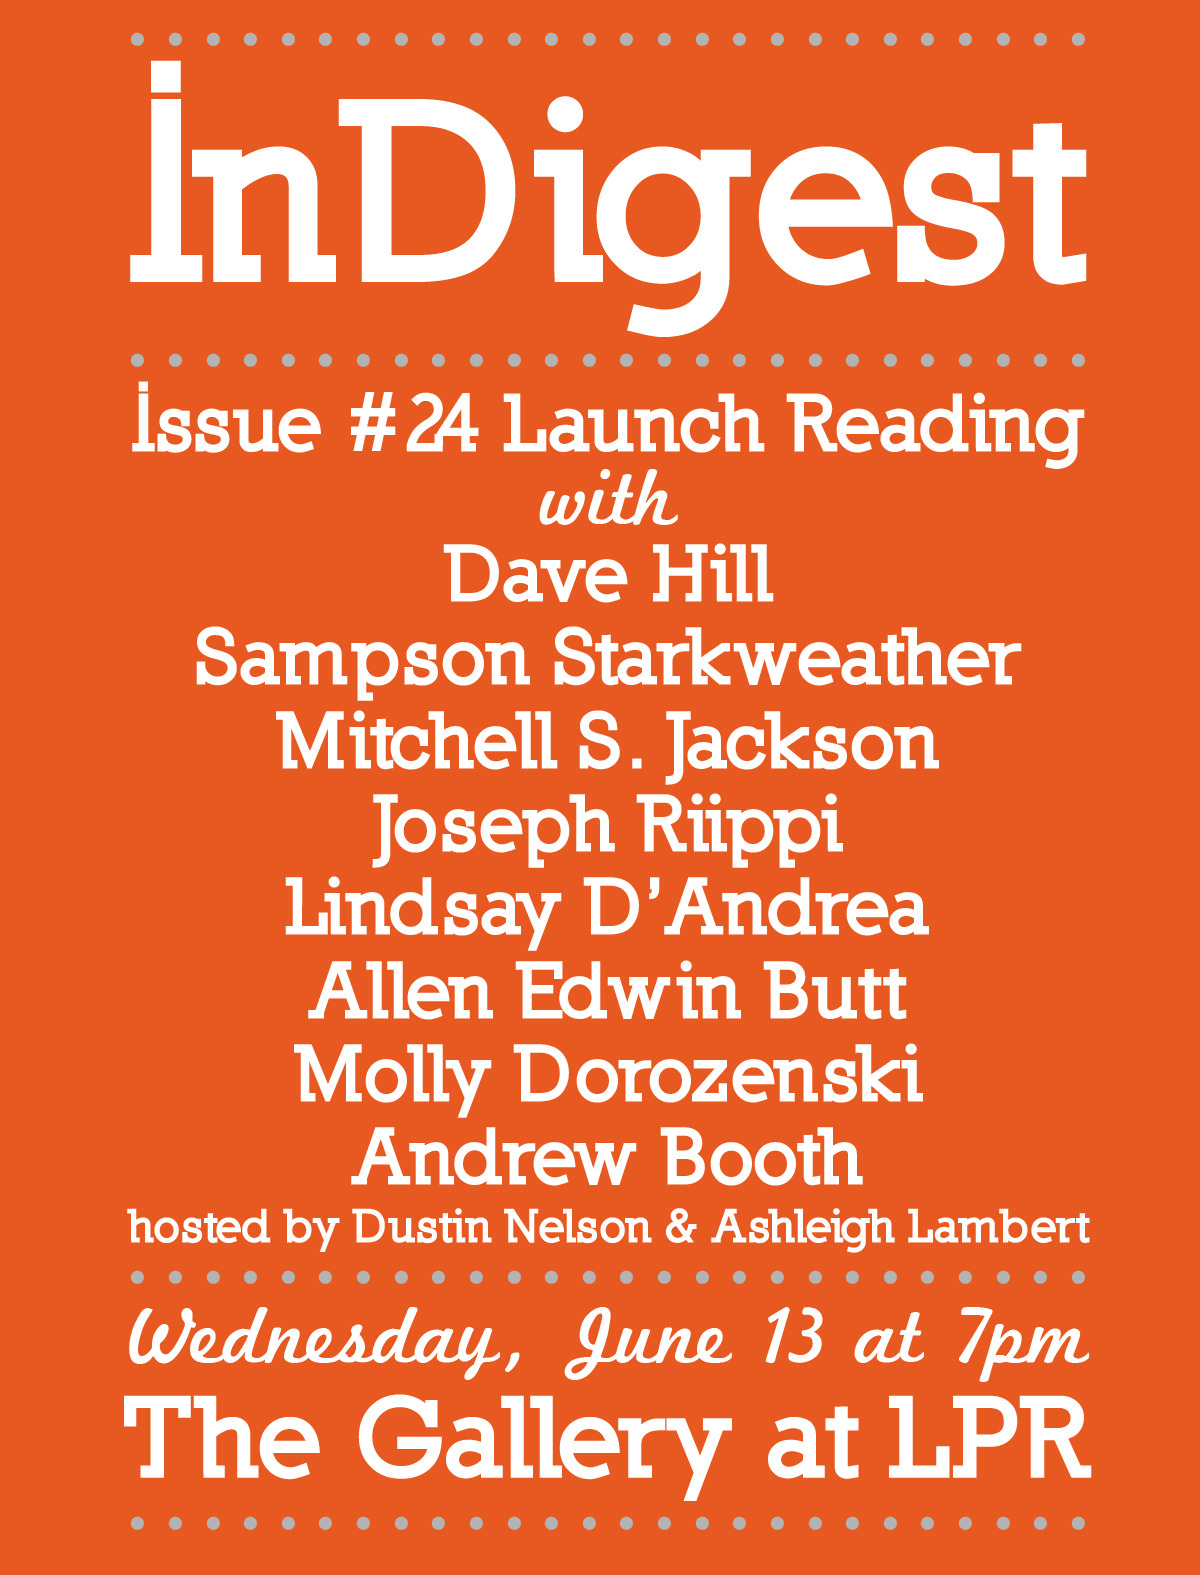 dlukenelson:  Tonight is the InDigest Issue #24 Launch Party. We'll have drinks and then readings from Dave Hill, Sampson Starkweather, Mitchell S. Jackson, Joseph Riippi, Lindsay D'Andrea, Molly Dorozenski, Allen Edwin Butt and Andrew Booth. It'll be better than an ear wig. (Flier was designed by Zan Emerson. Woot.)